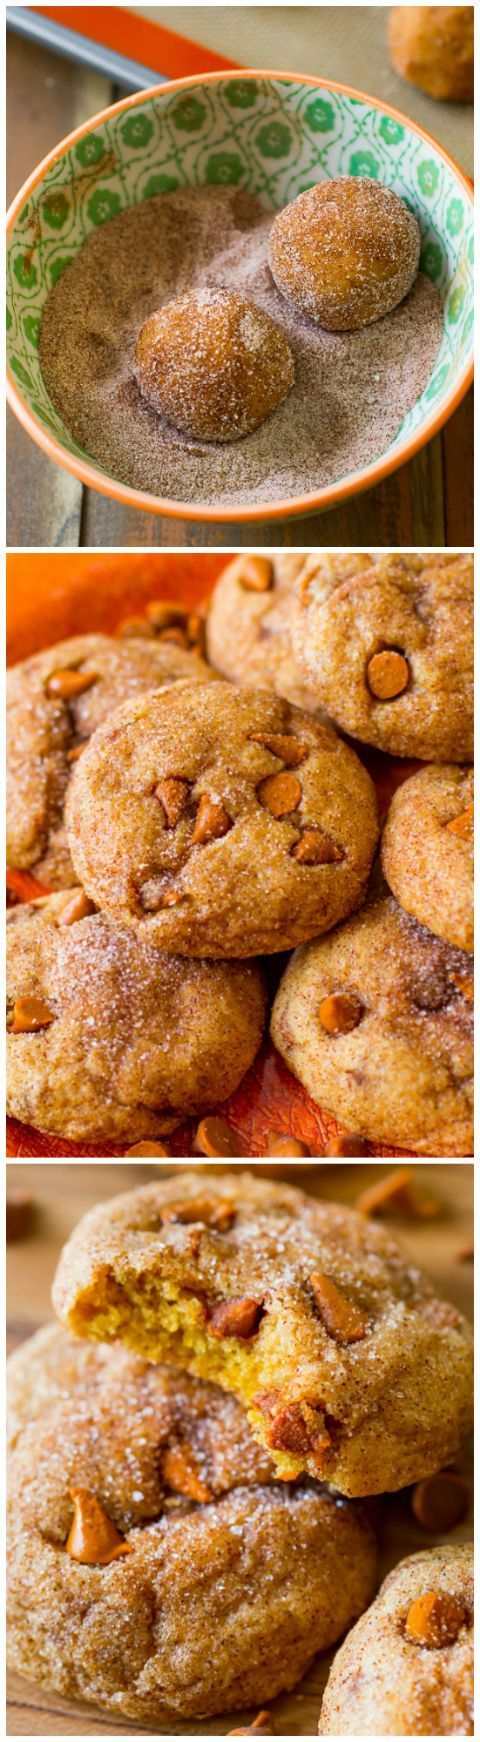 An easy and quick recipe for Cinnamon Chip Pumpkin Cookies. Learn how to make them soft and chewy without being cakey! Recipe on sallysbakingaddiction.com